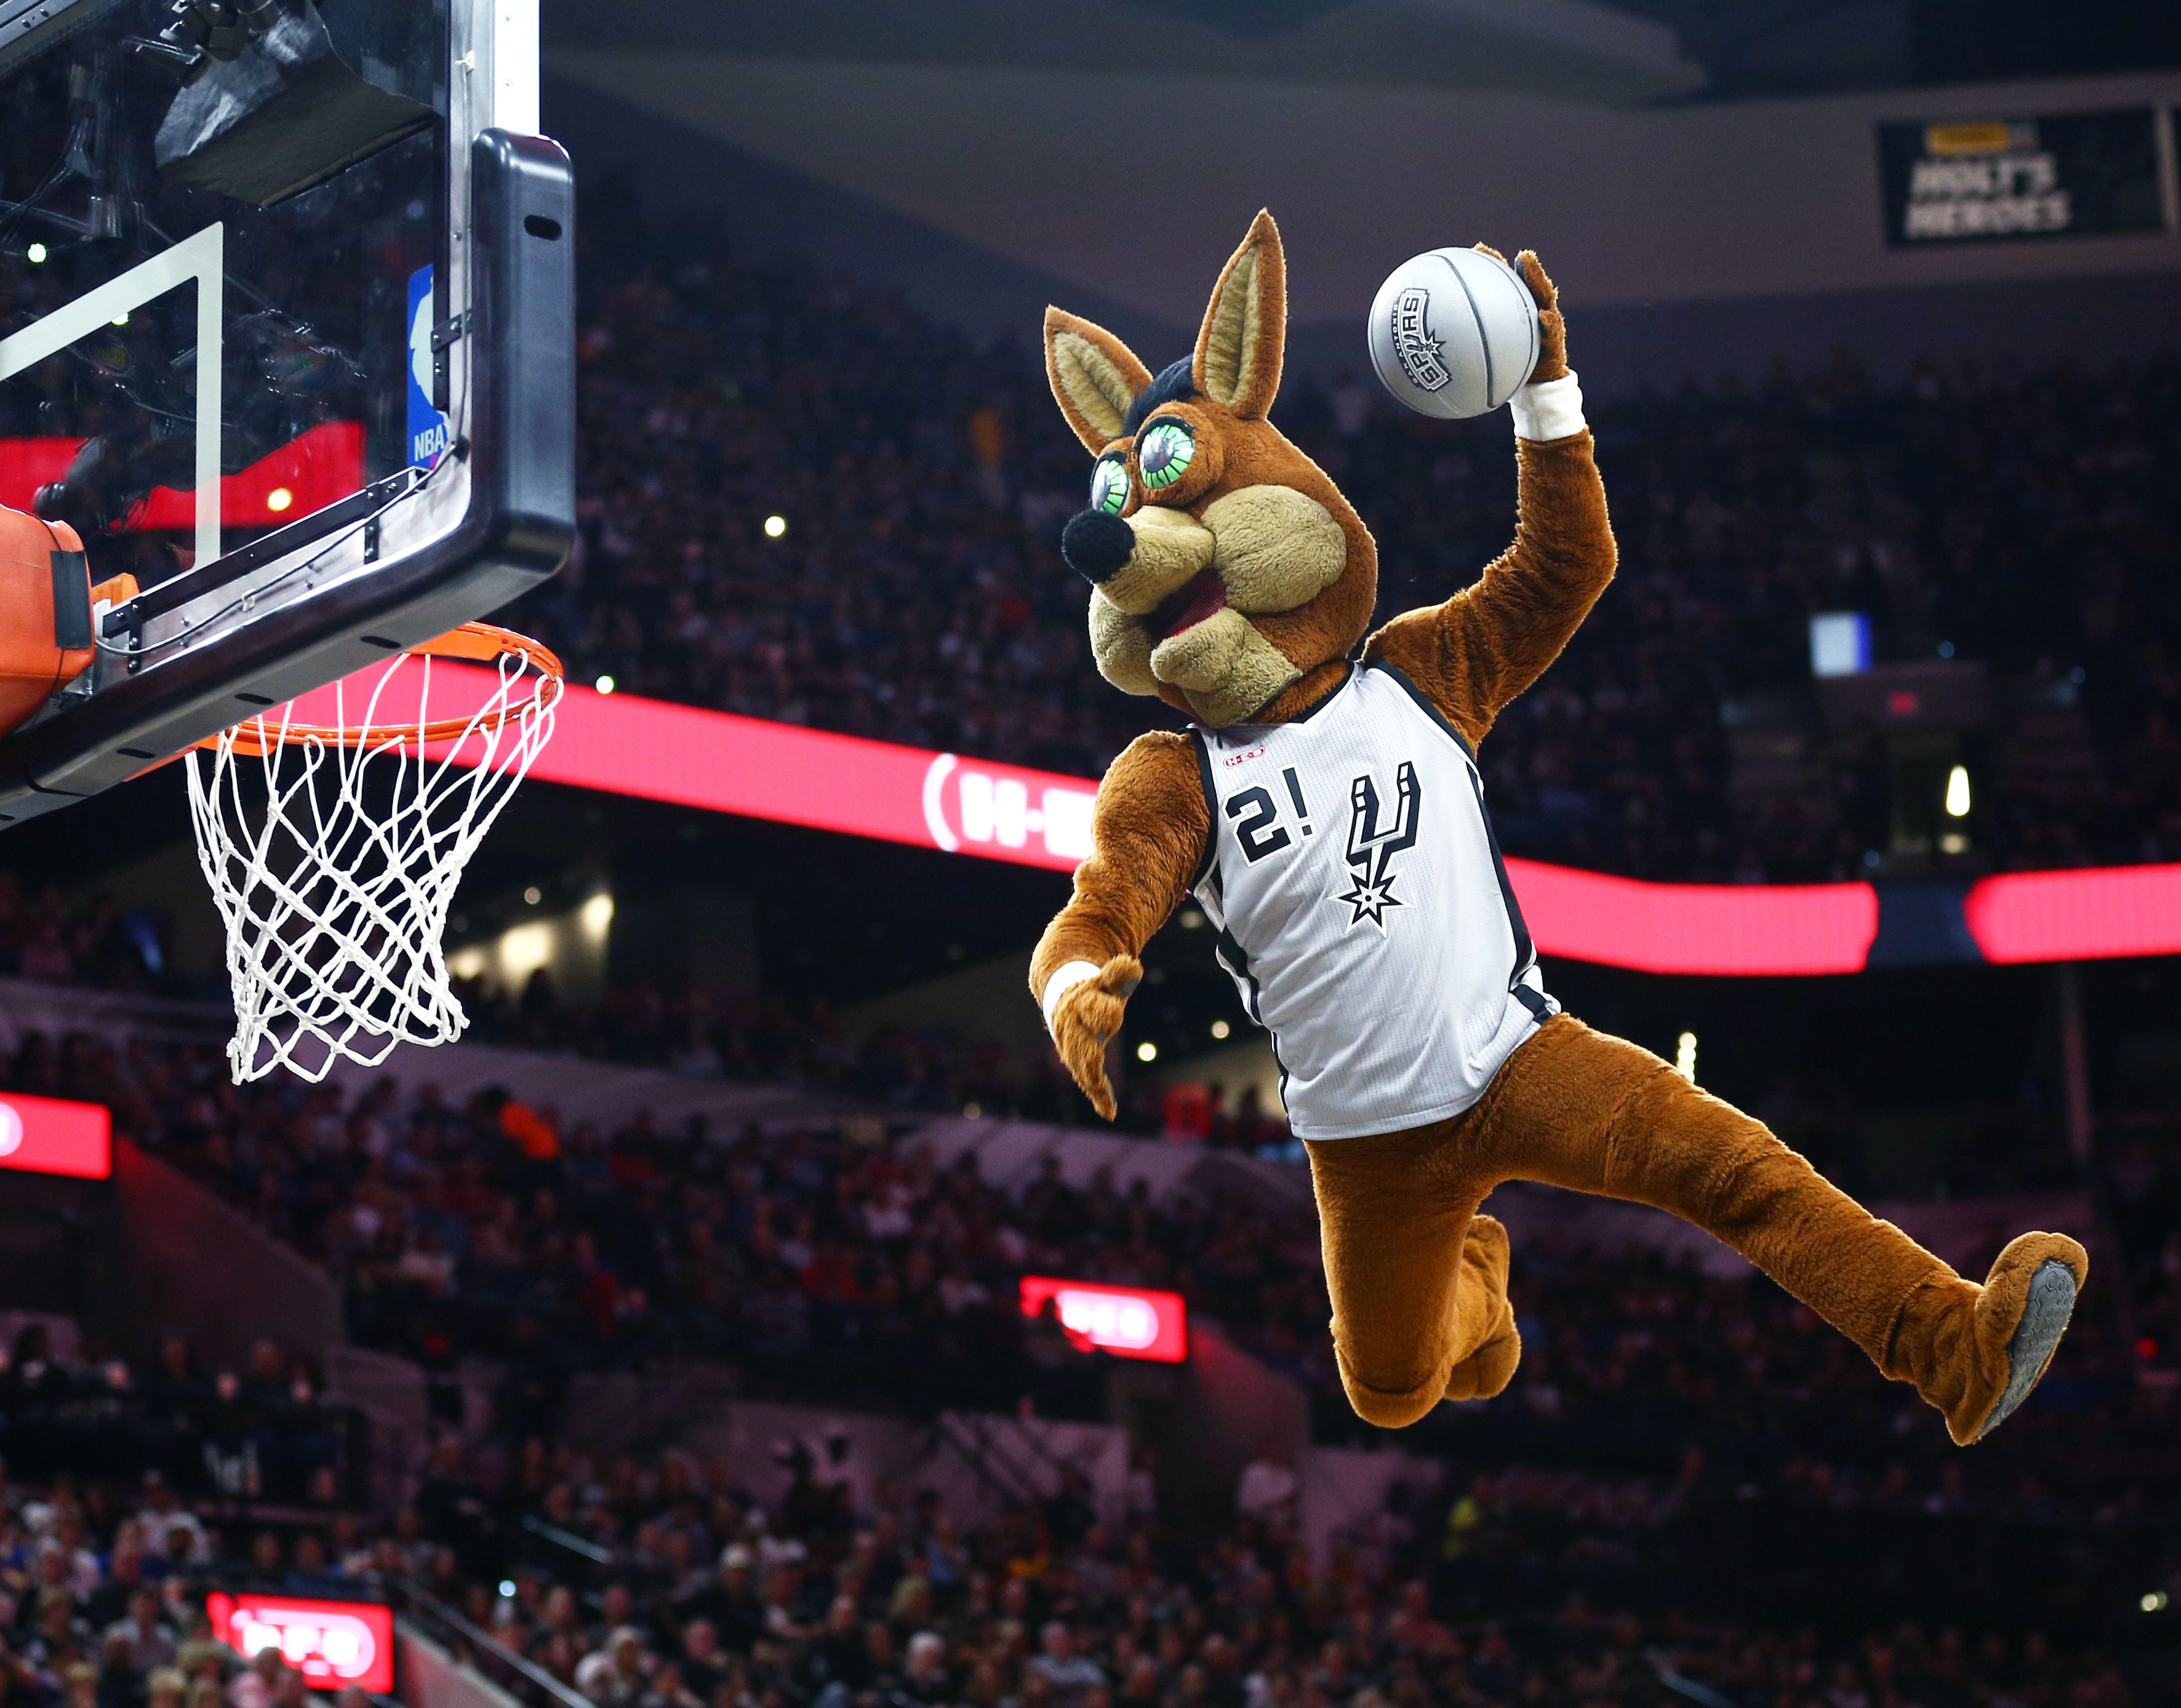 See the San Antonio Spurs mascot gets in on the male romper trend